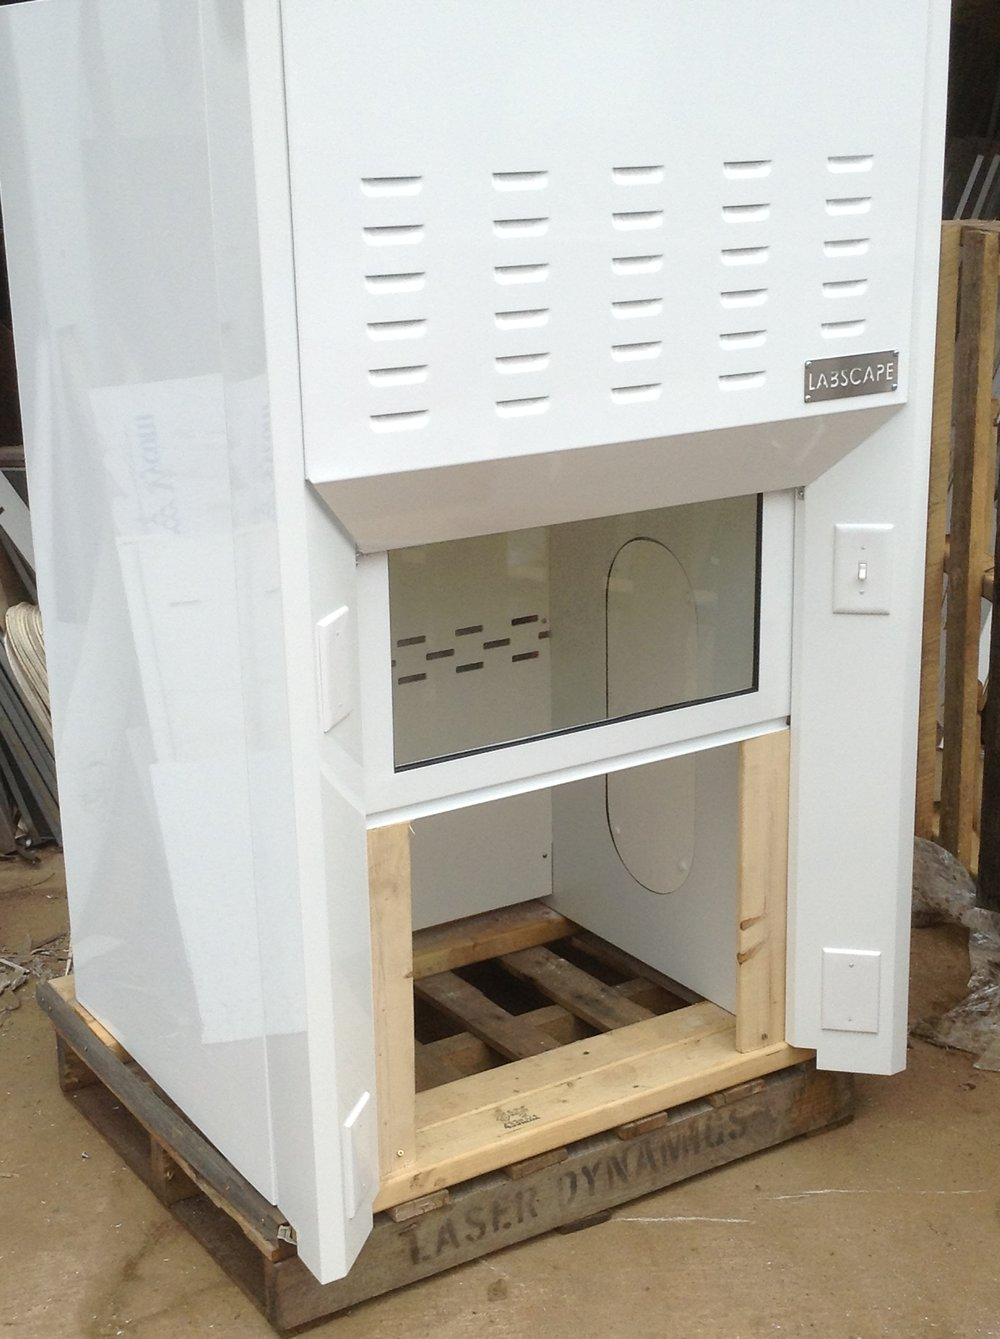 Labscape Fume Hood for Crane Aerospace